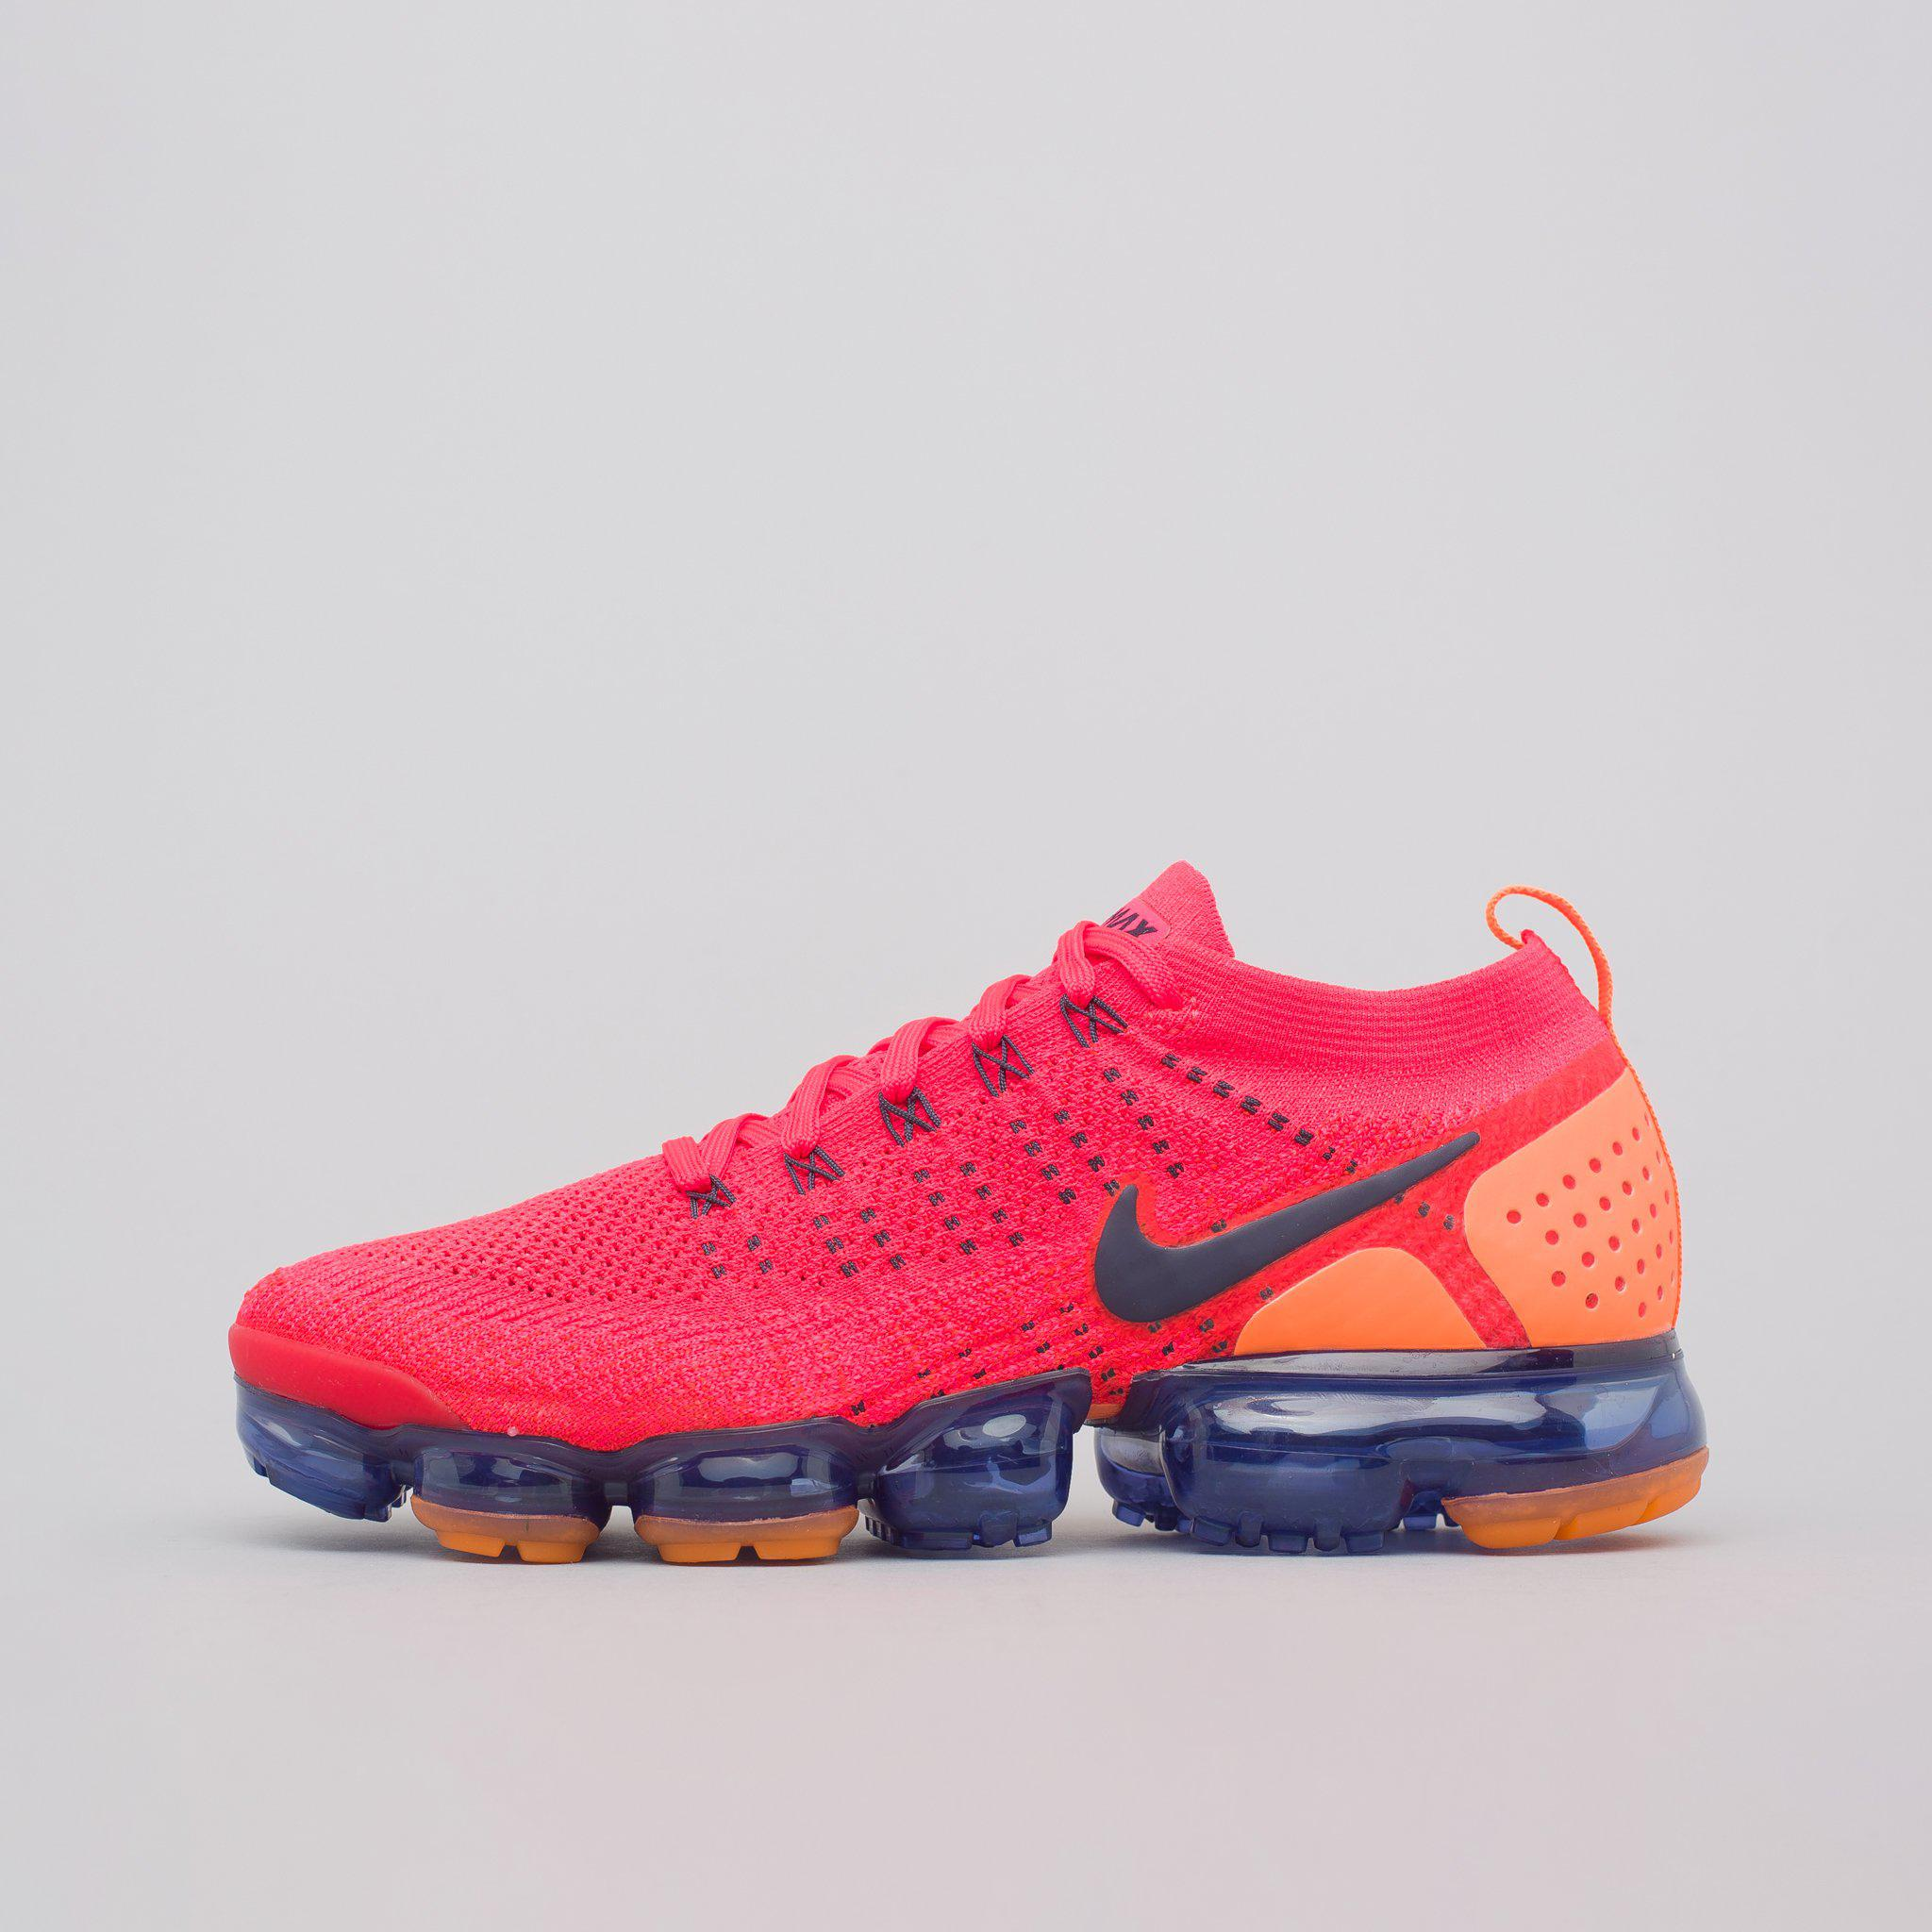 0cfecfc89f93 Lyst - Nike Air Vapormax Flyknit 2 In Red Orbit in Red for Men